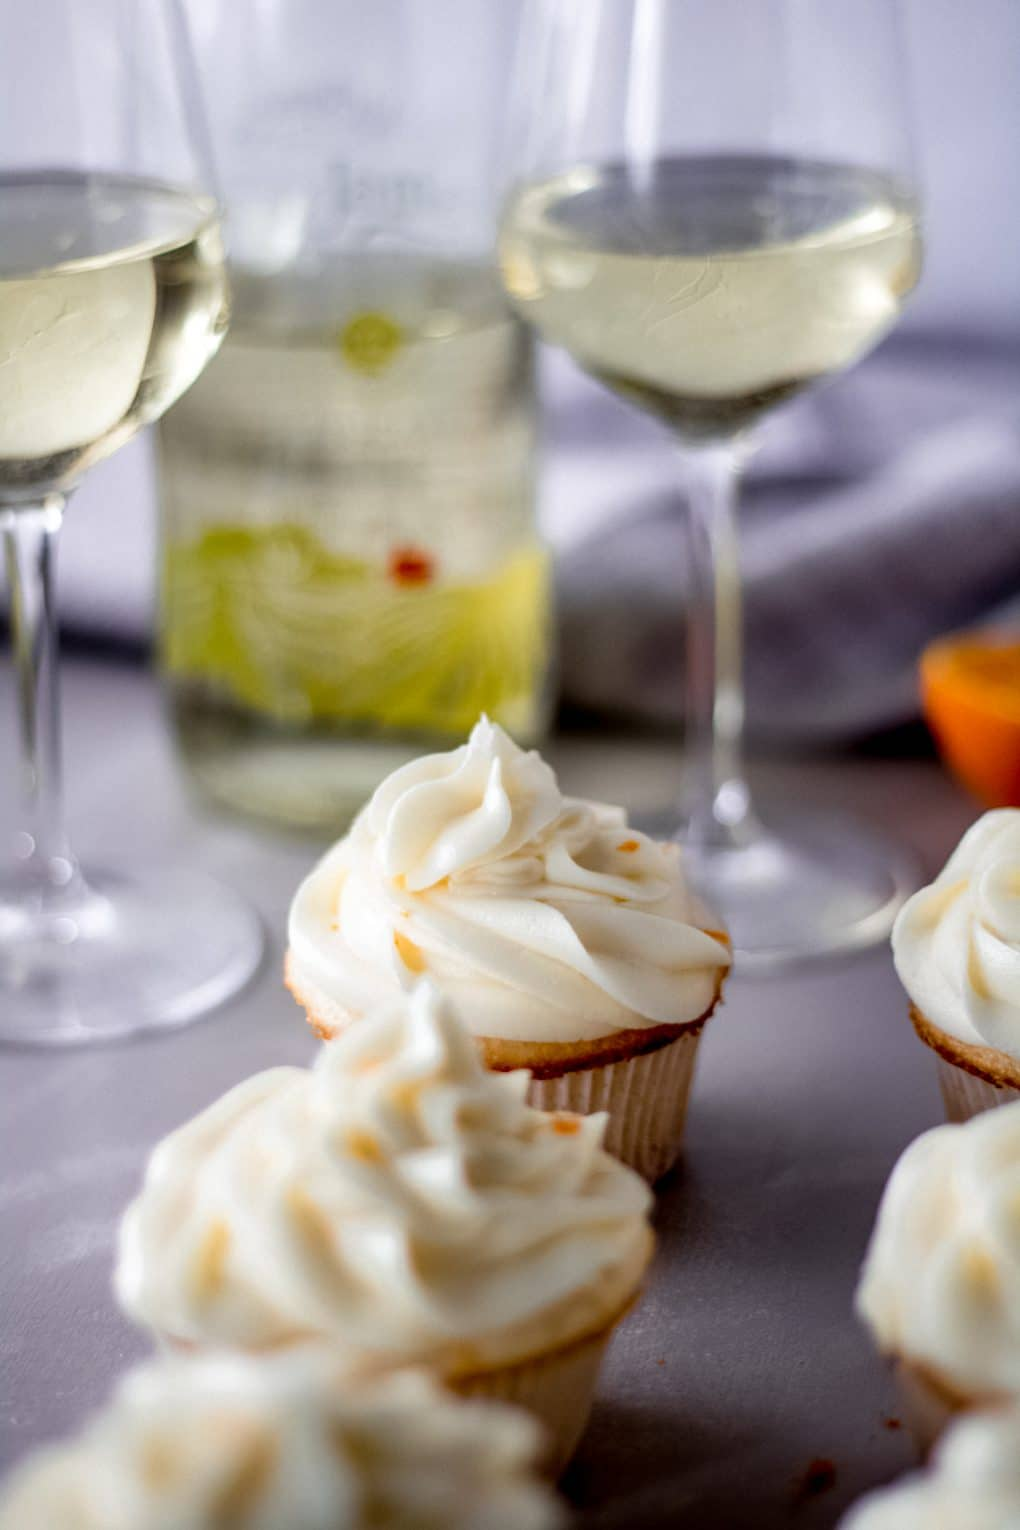 orange moscato cupcakes sitting on a table with a bottle of St. James Moscato in the background and two wine glasses.